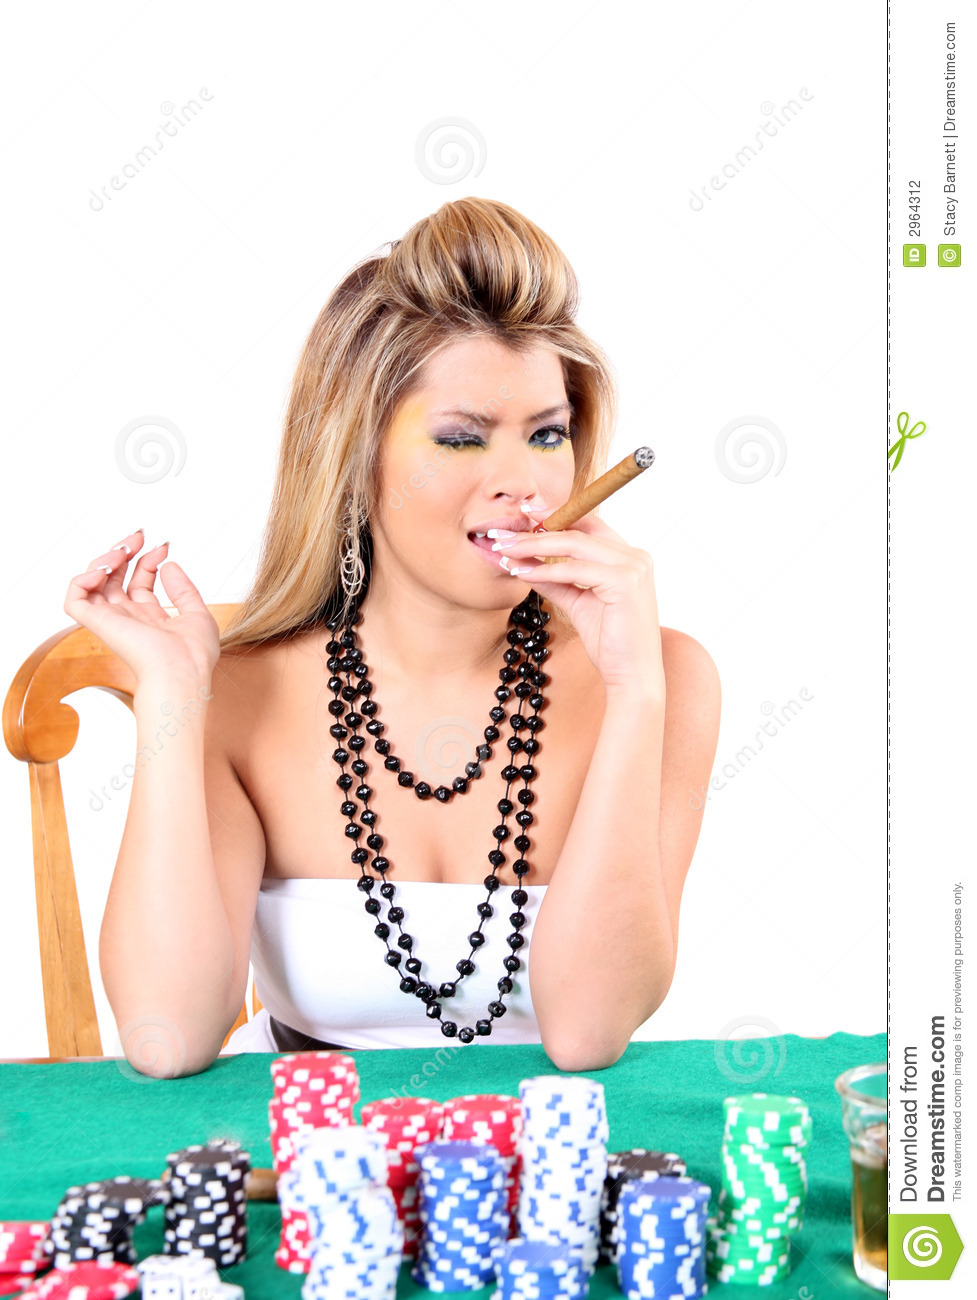 Poker Woman 2 Stock Photography - Image: 2964312